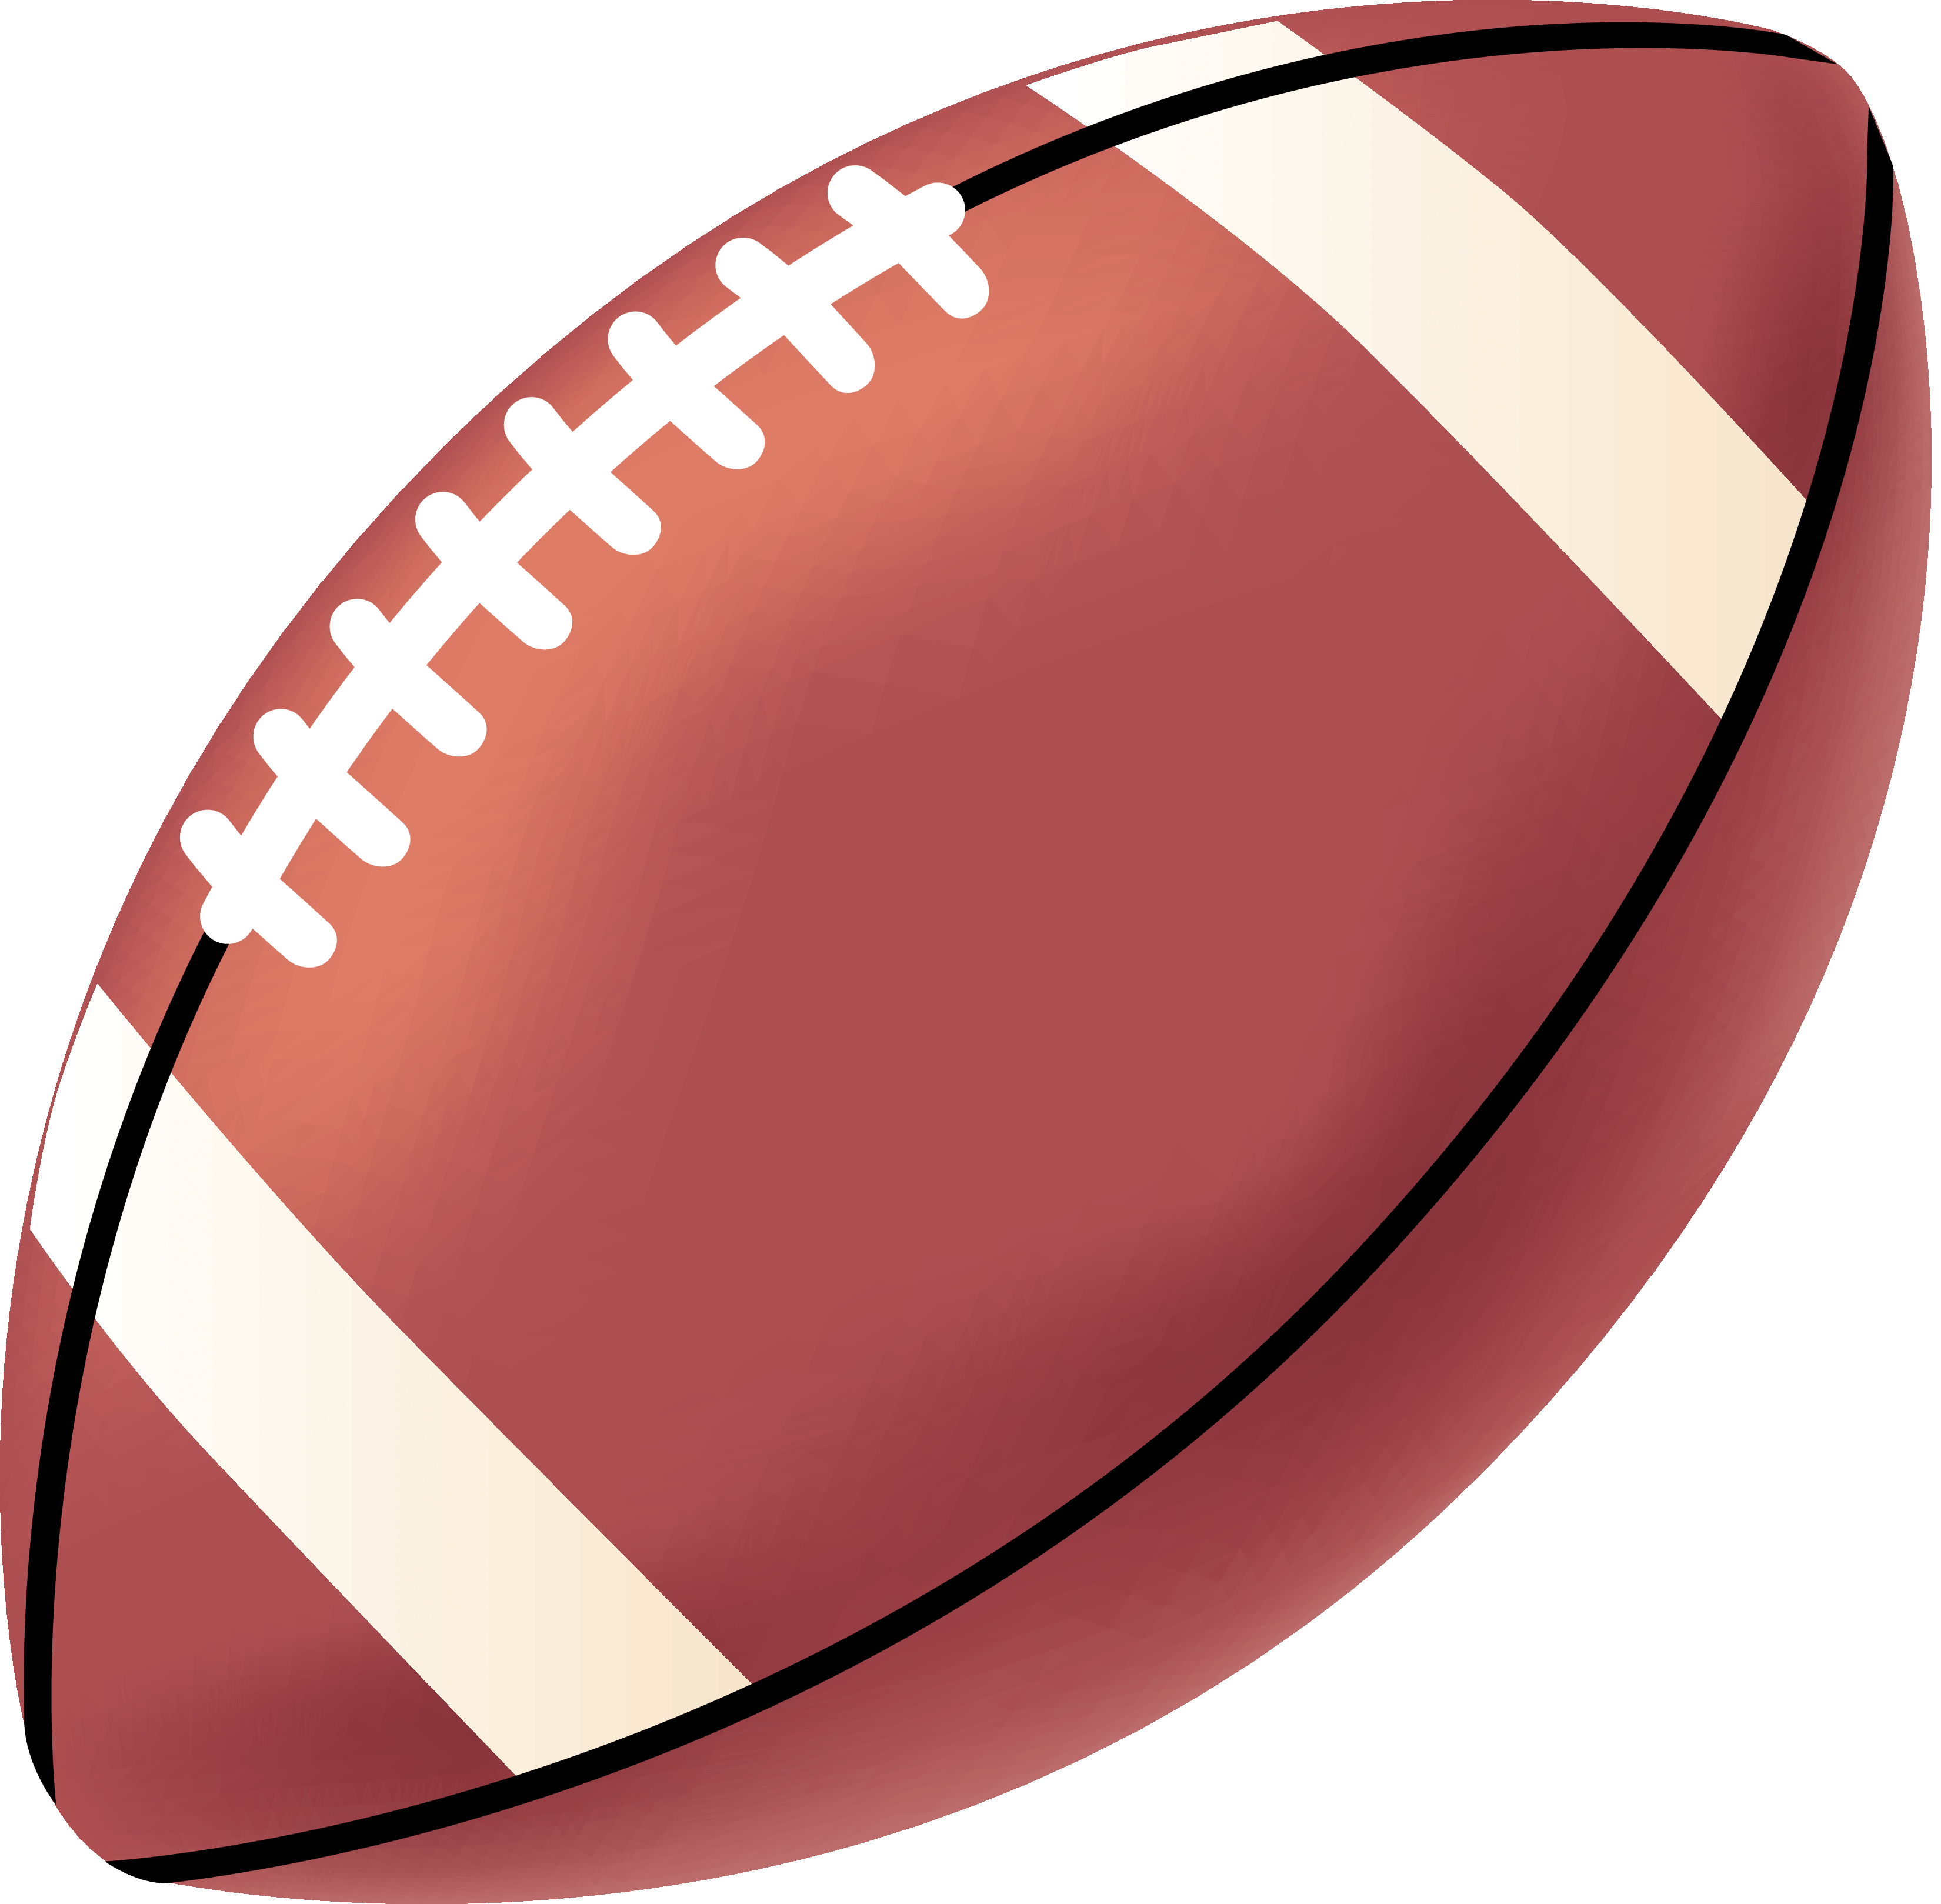 Small cliparts image of. Football clipart homecoming